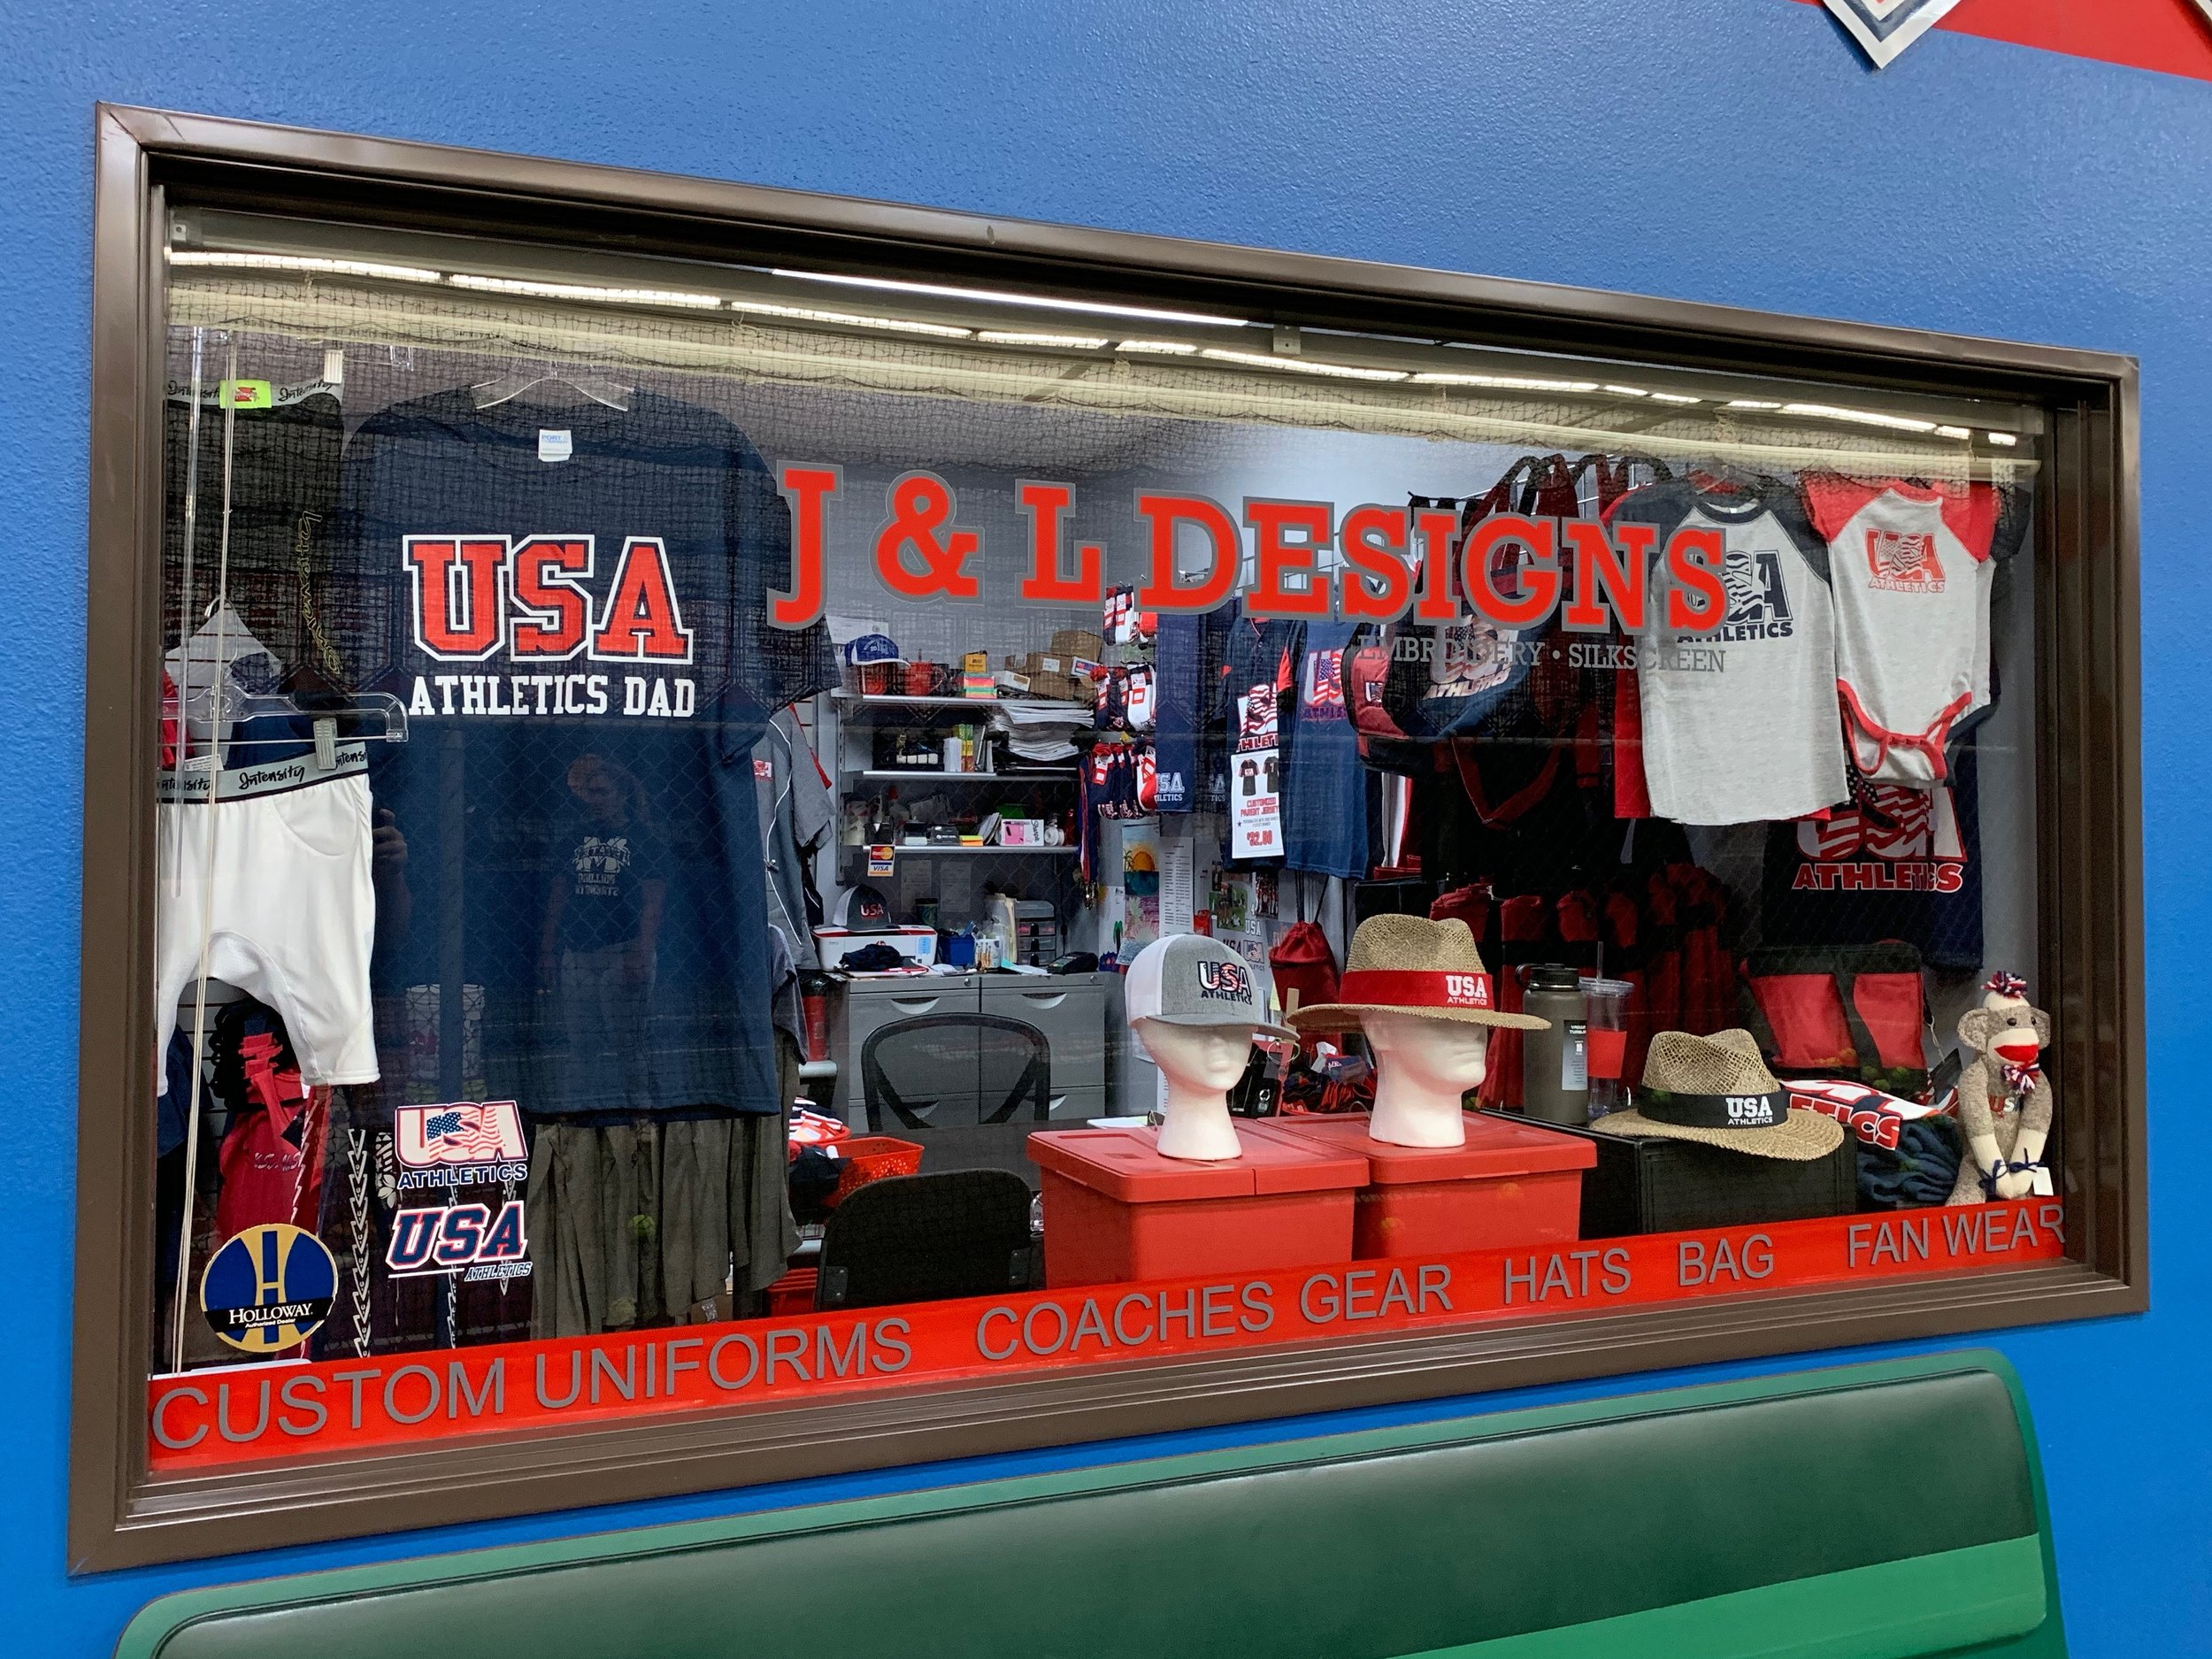 A look inside J&L Design's shop at On Deck in Long Beach. Featuring custom uniforms, gear for coaches, hats, bags, and fan wear.